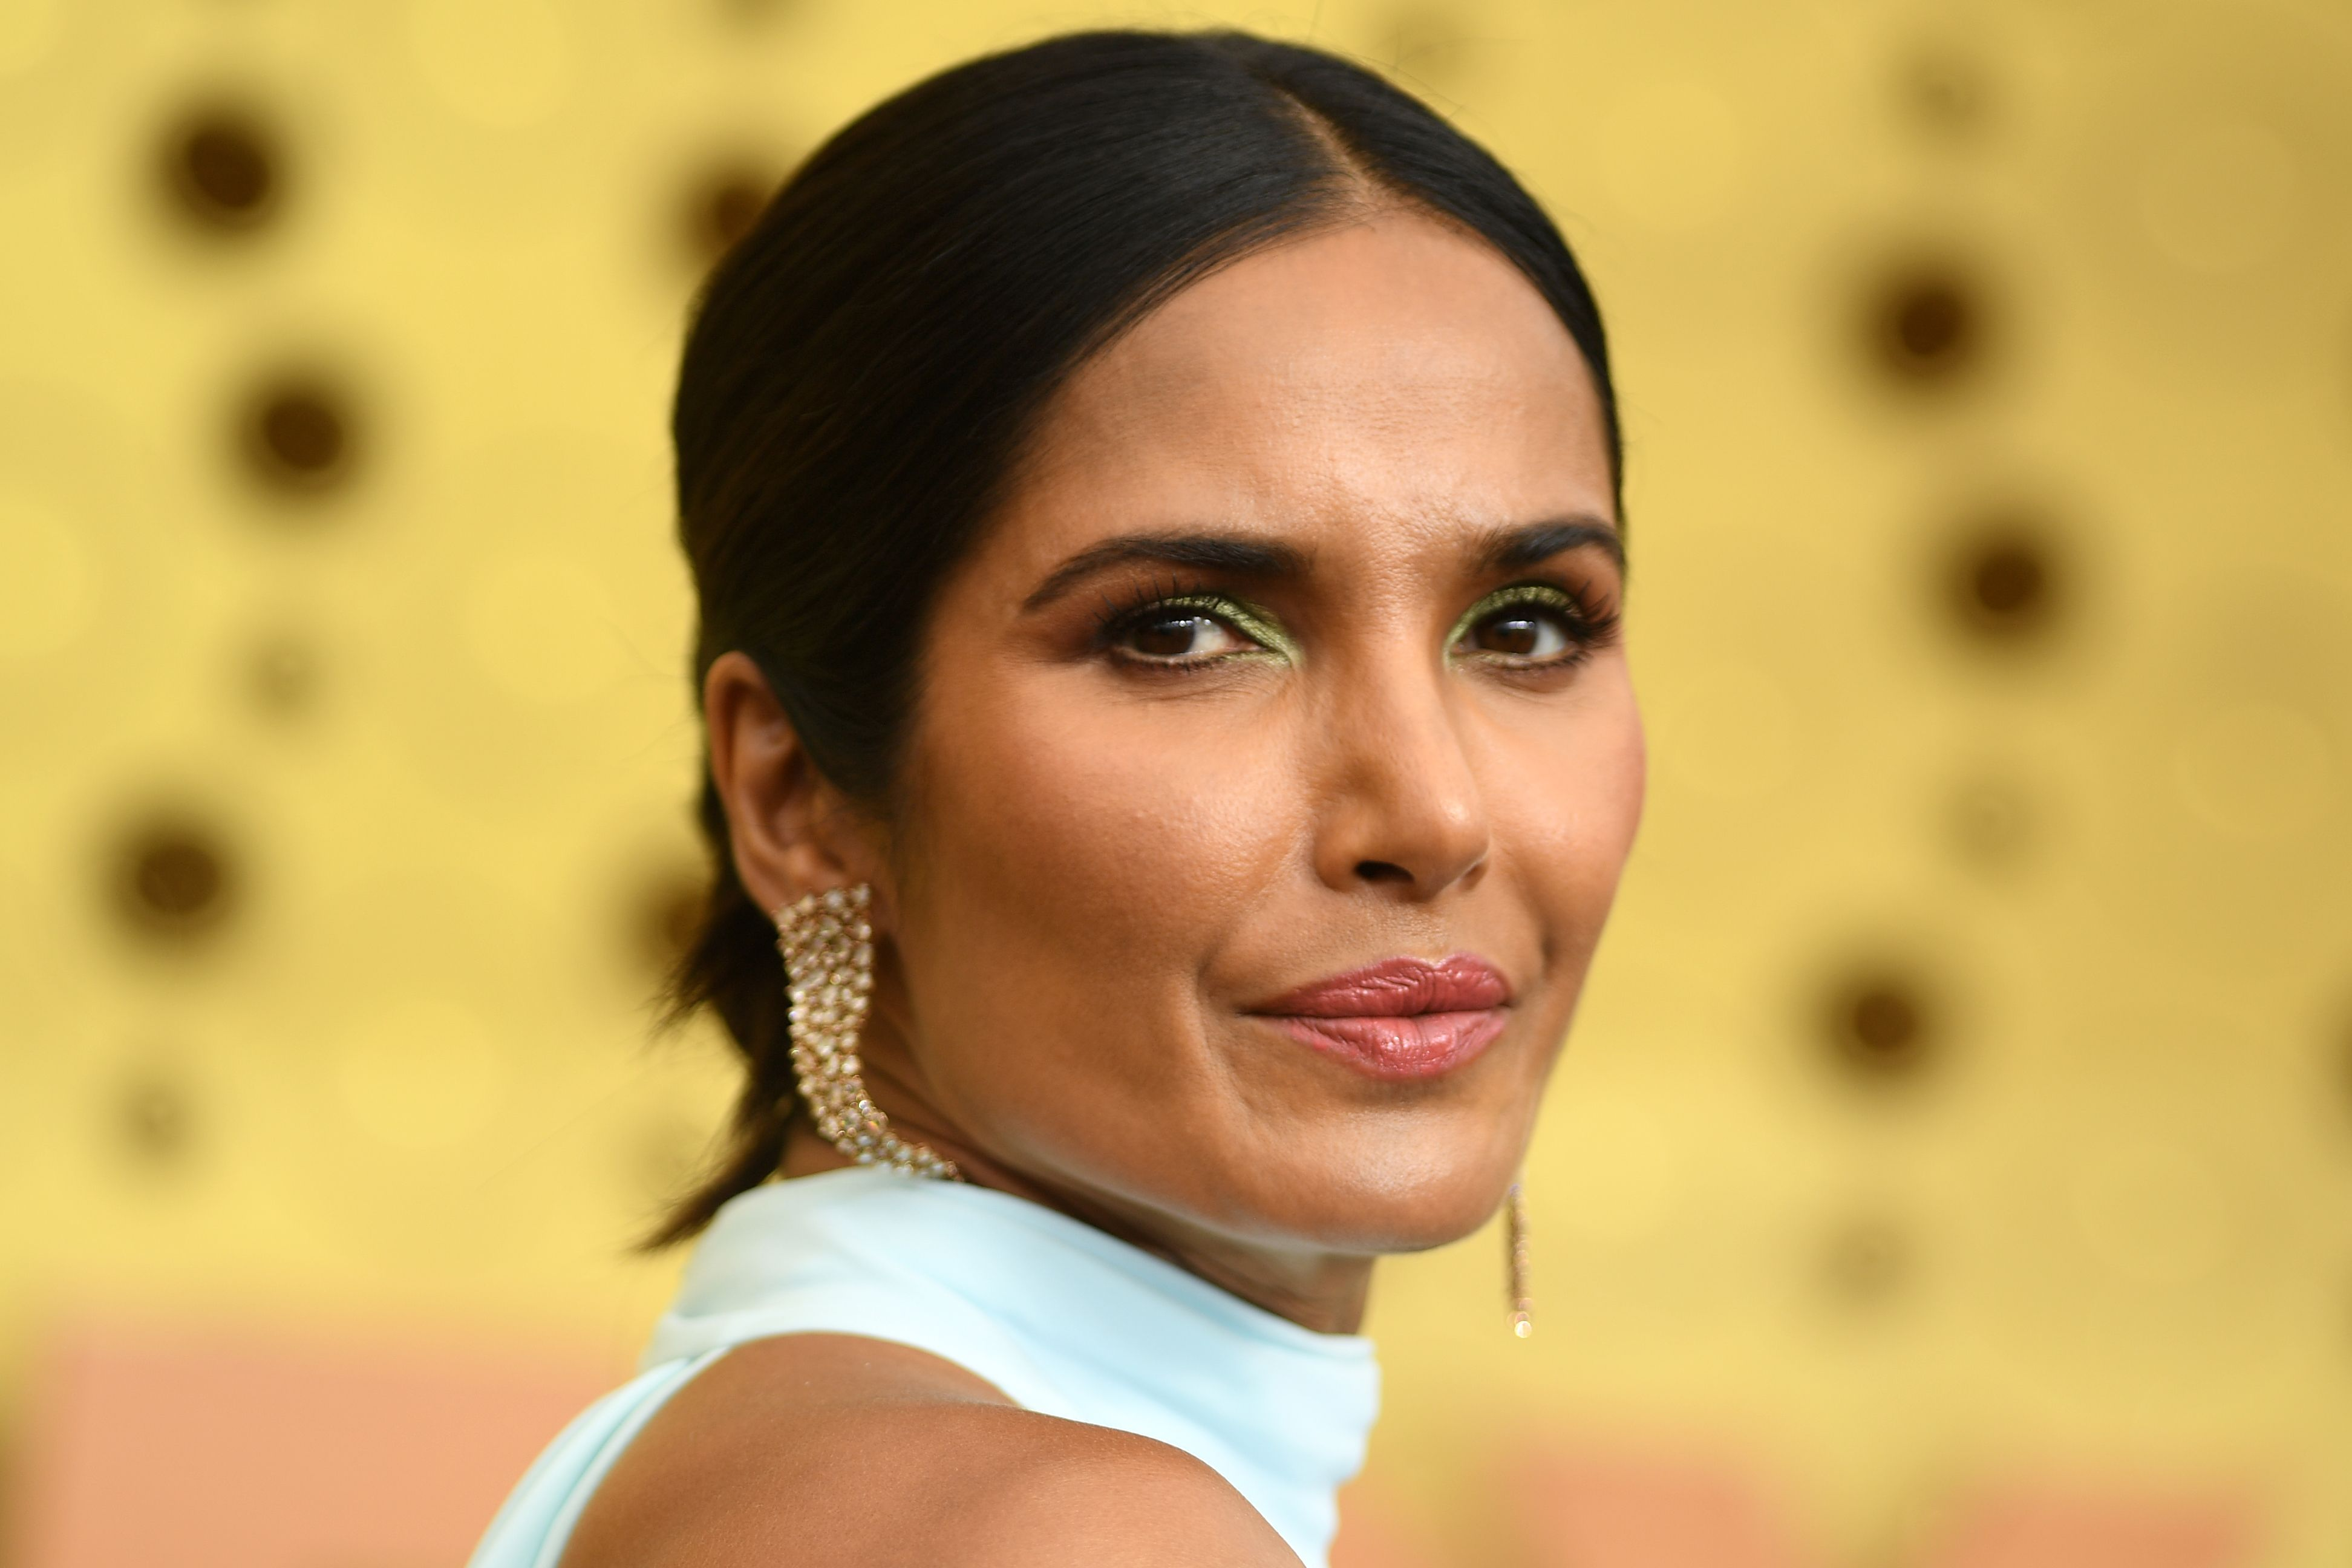 Padma Lakshmi at an event for The 71st Primetime Emmy Awards (2019)